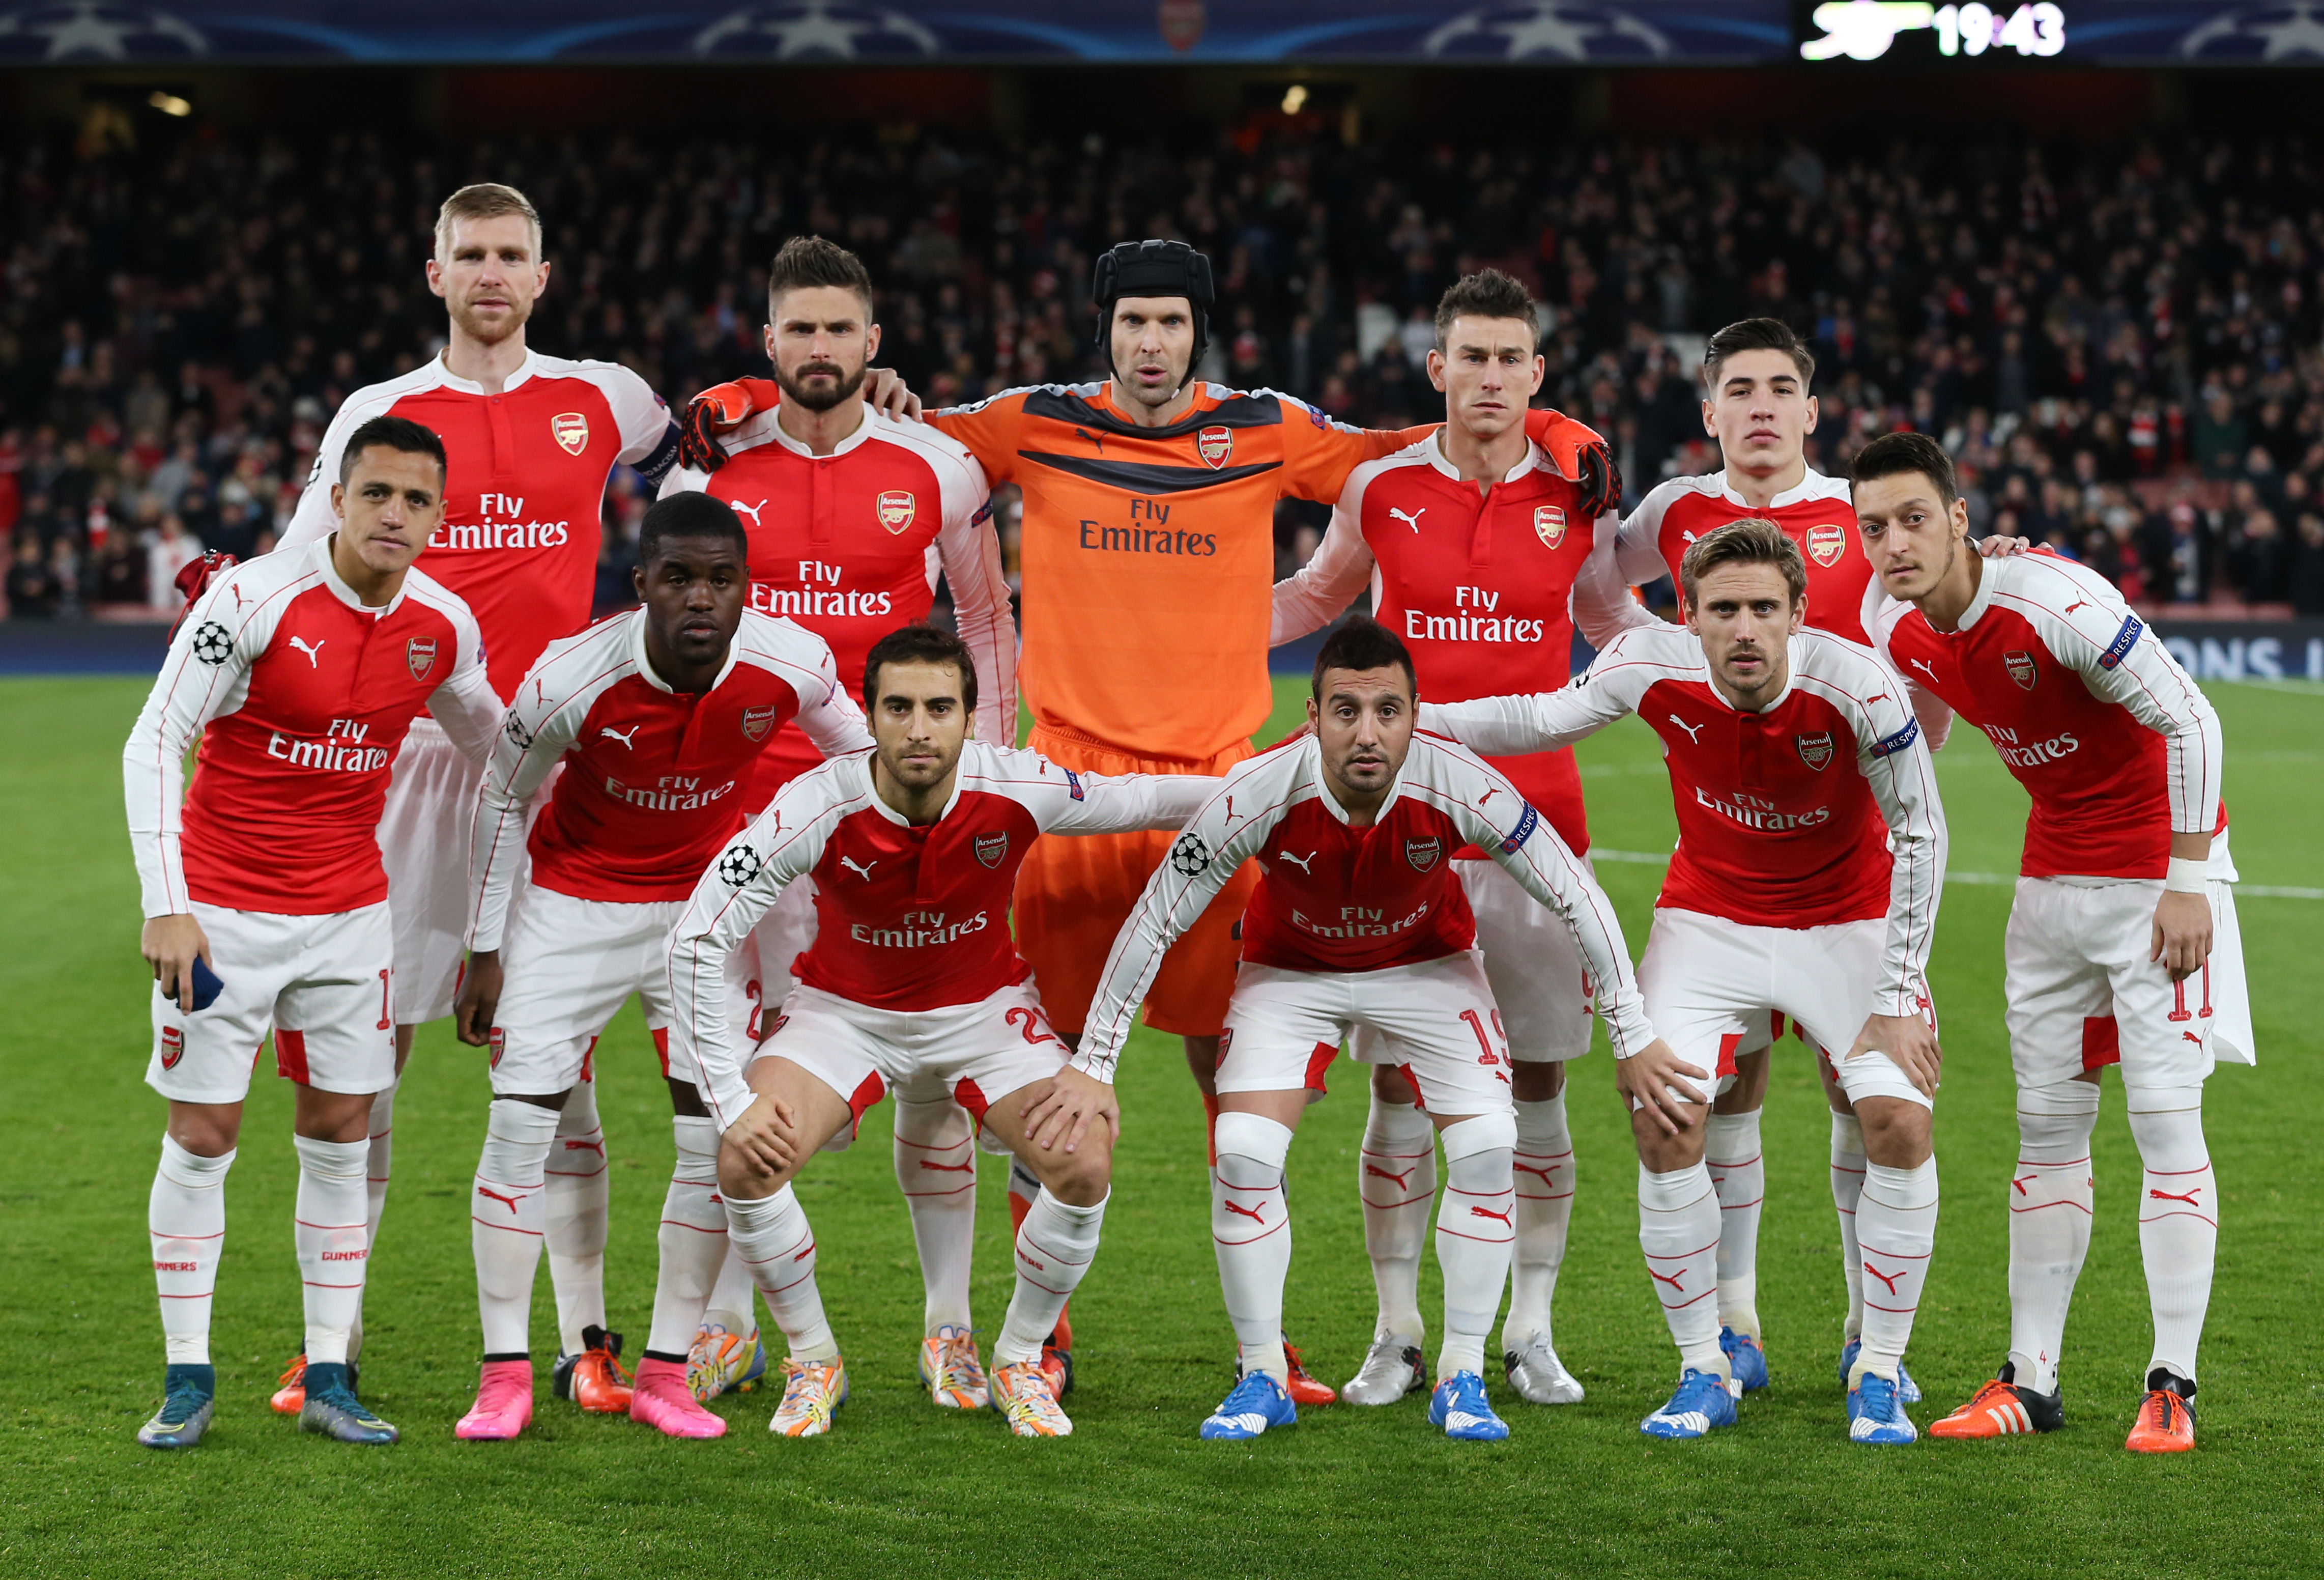 Arsenal team group before the match during Champions League game at Emirates Stadium in December 24, 2015. Photo: Reuters